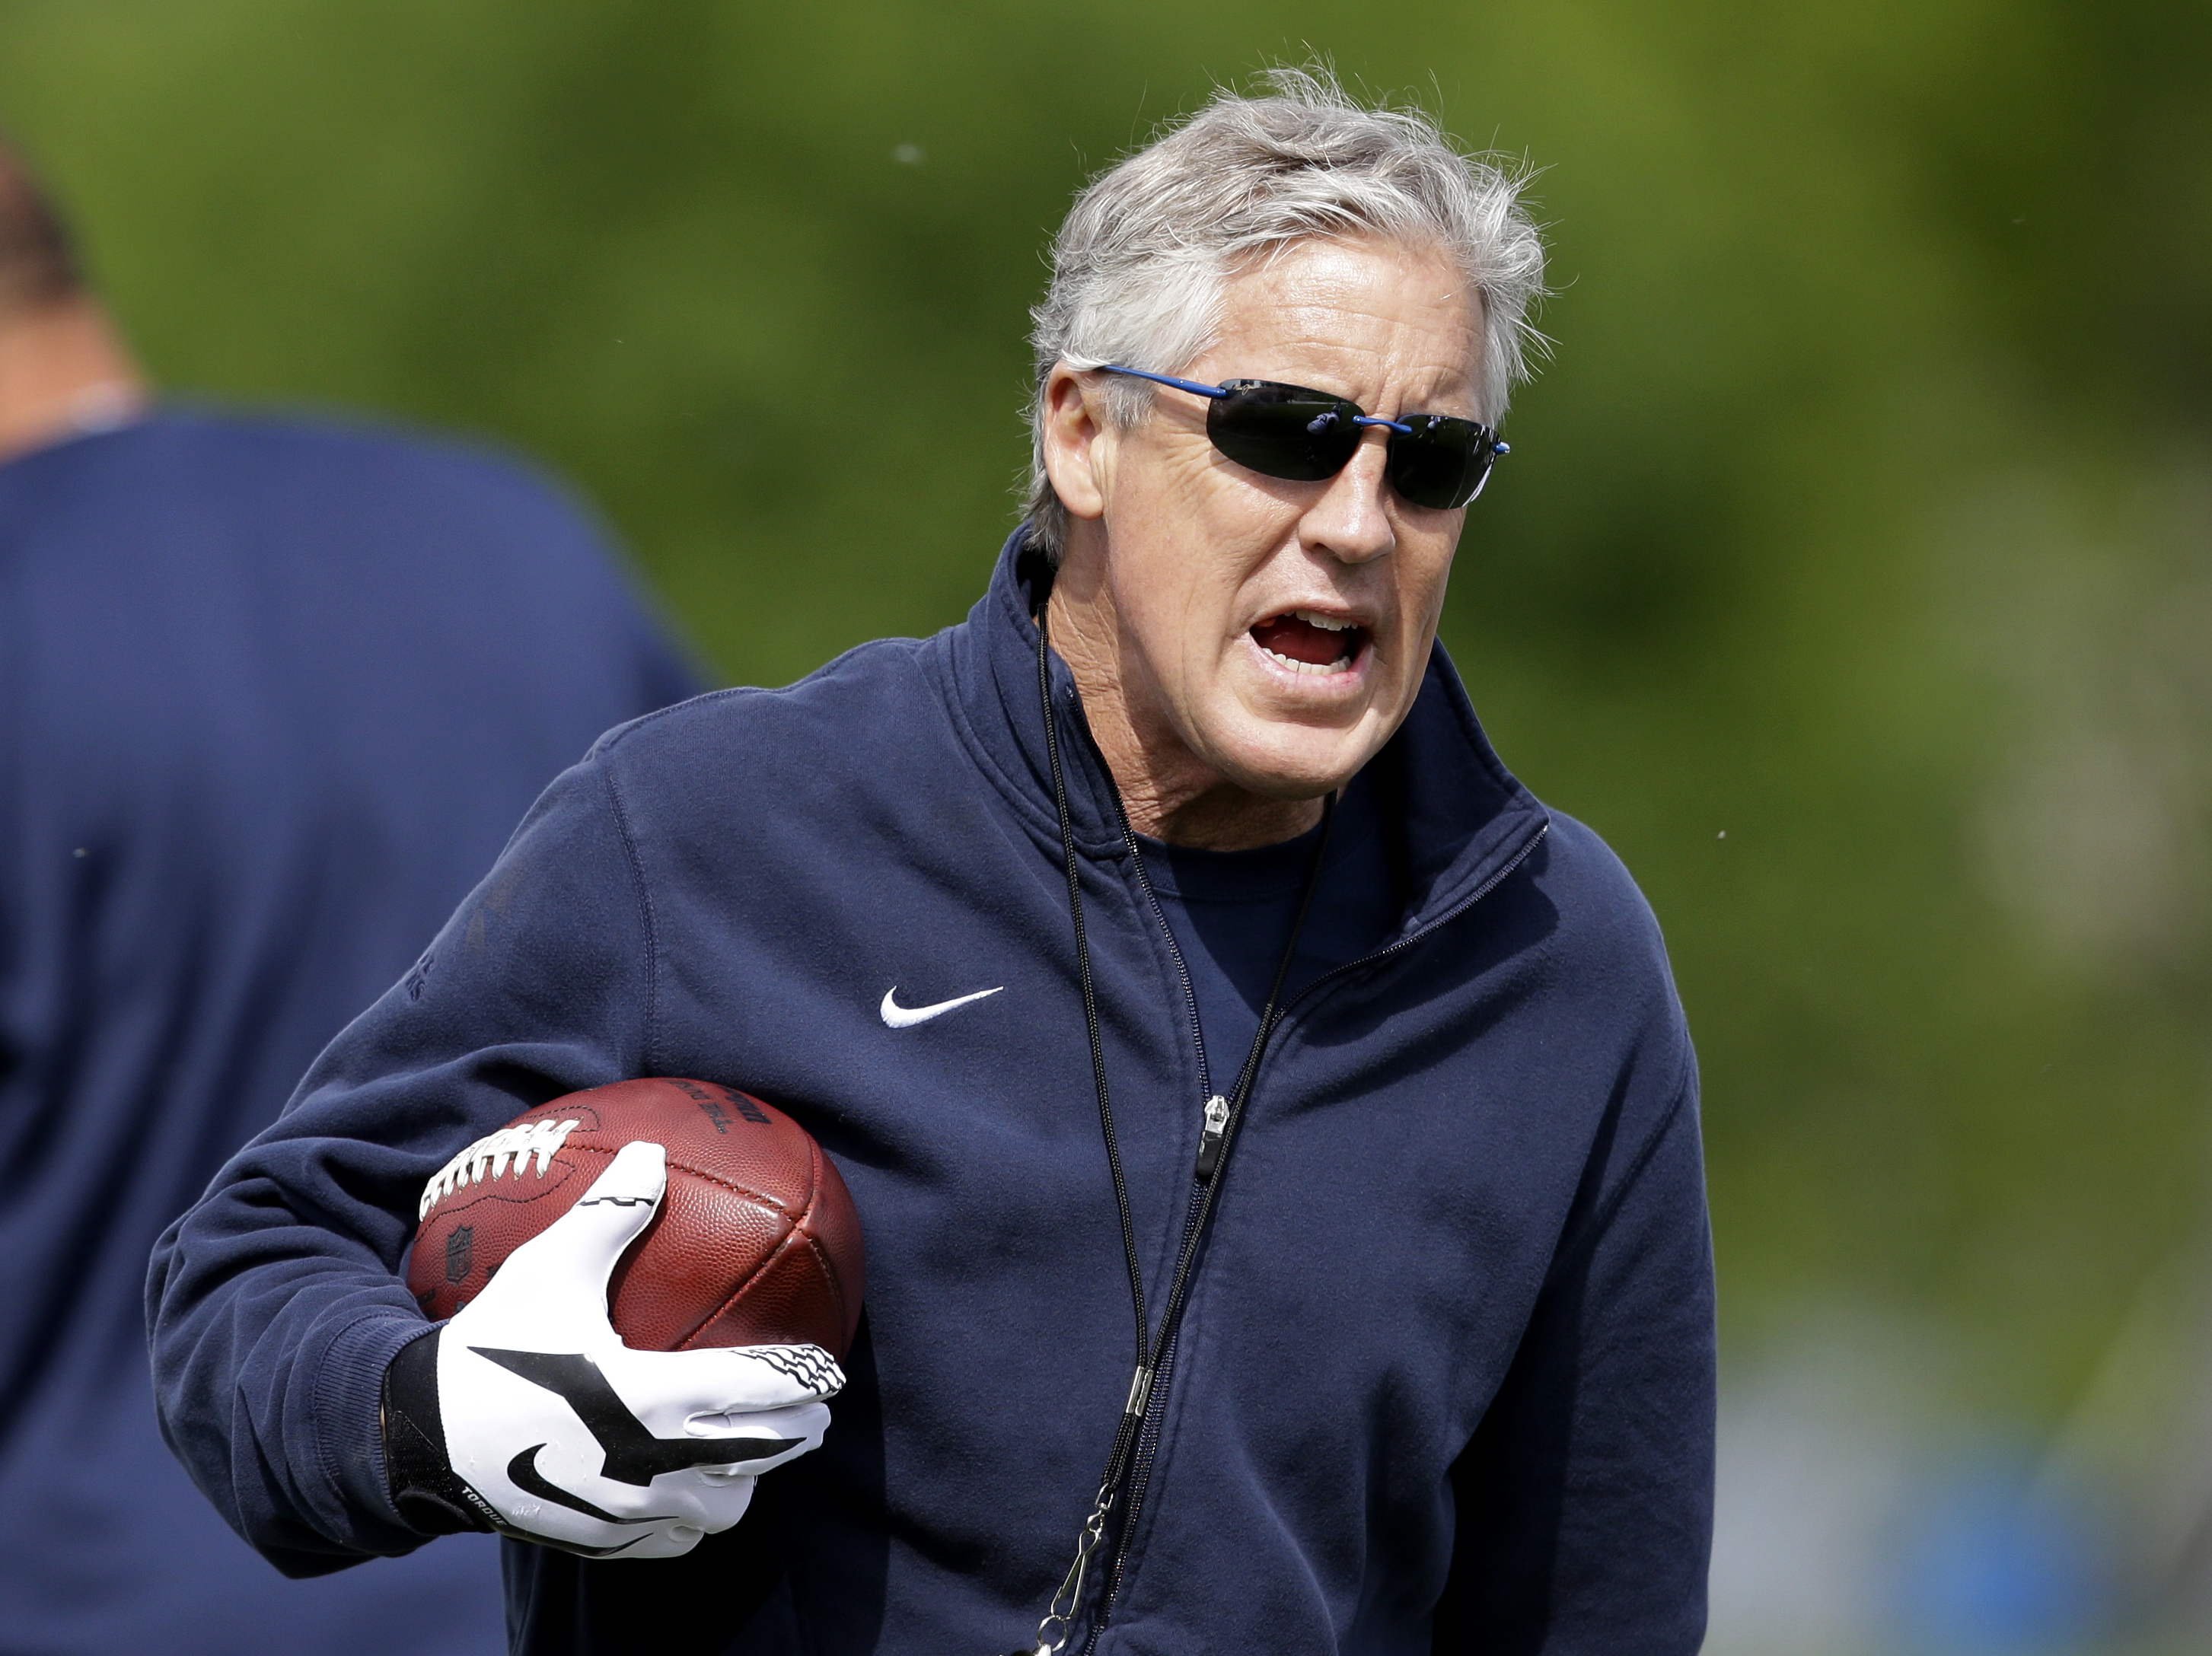 FILE - In this May 10, 2015, file photo, Seattle Seahawks head coach Pete Carroll walks on the field during an NFL football rookie minicamp in Renton, Wash. Last offseason, the Seahawks went a little too hard in practice. And they're about to pay for it d